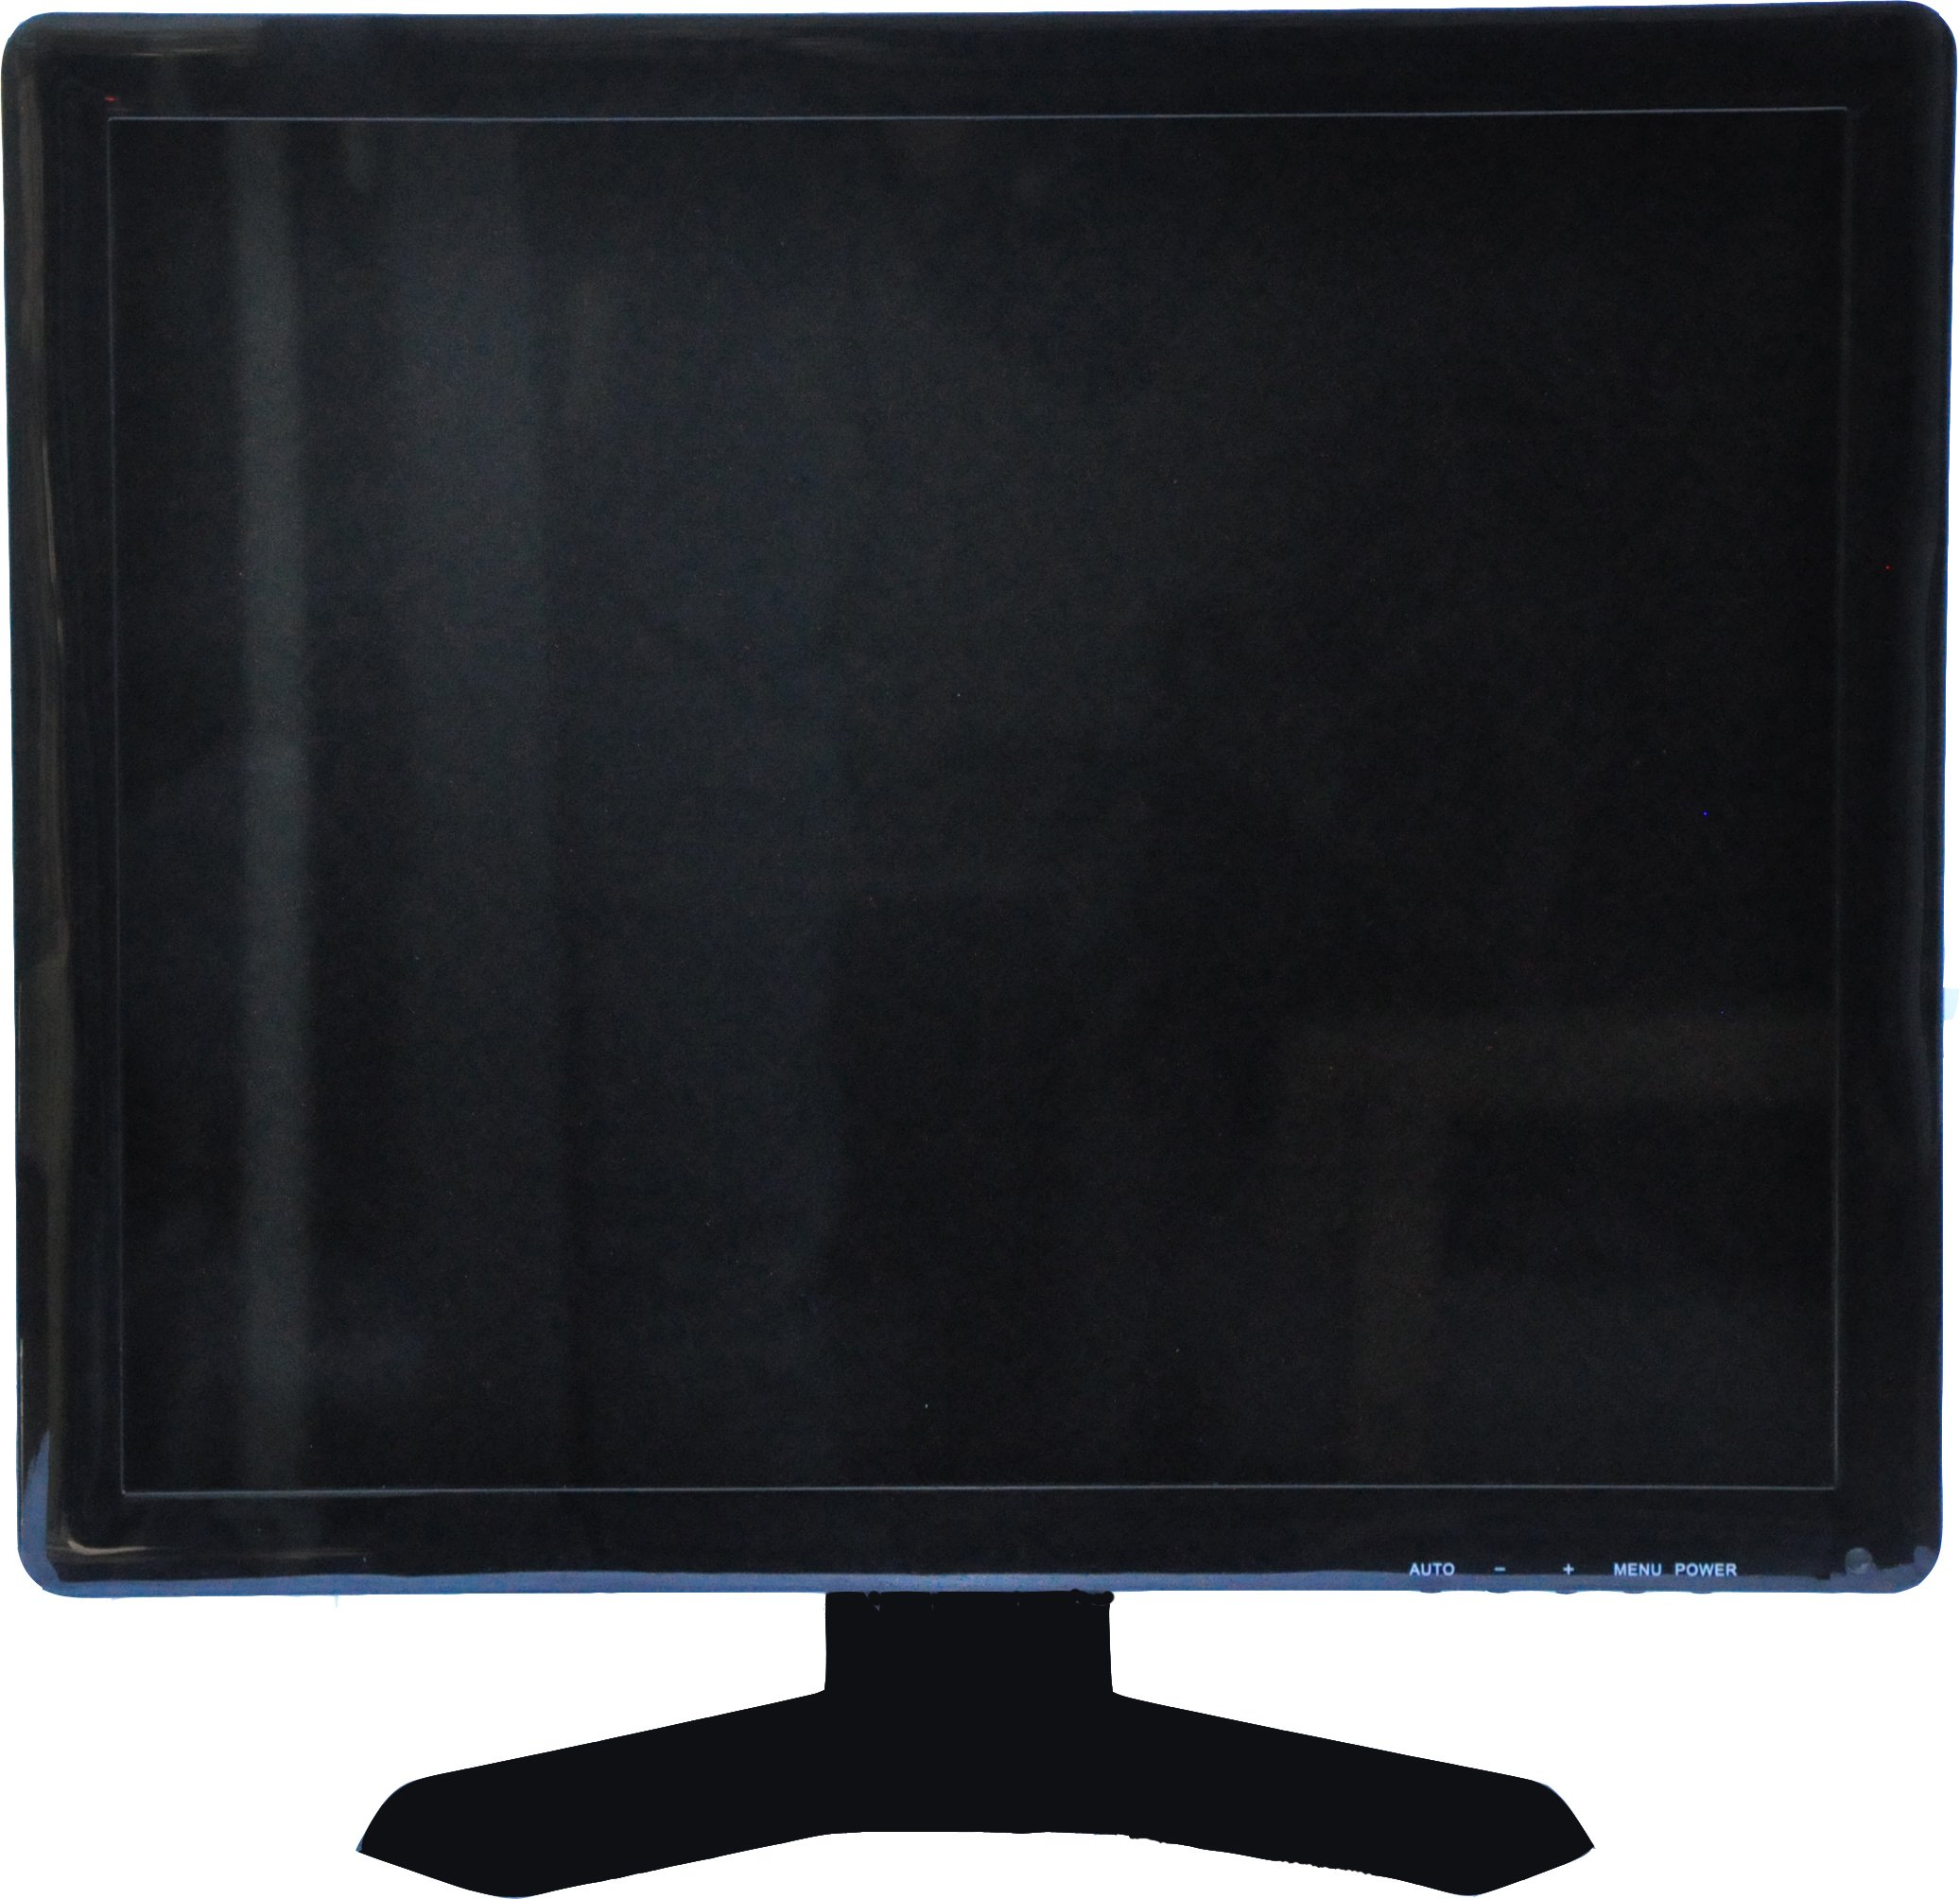 Miracle Business LT19BV LCD Monitor 4:3, 10Ms 1280 X 1024 SXGA Speakers, VGA/Video/BNC Computer Displays/Monitor